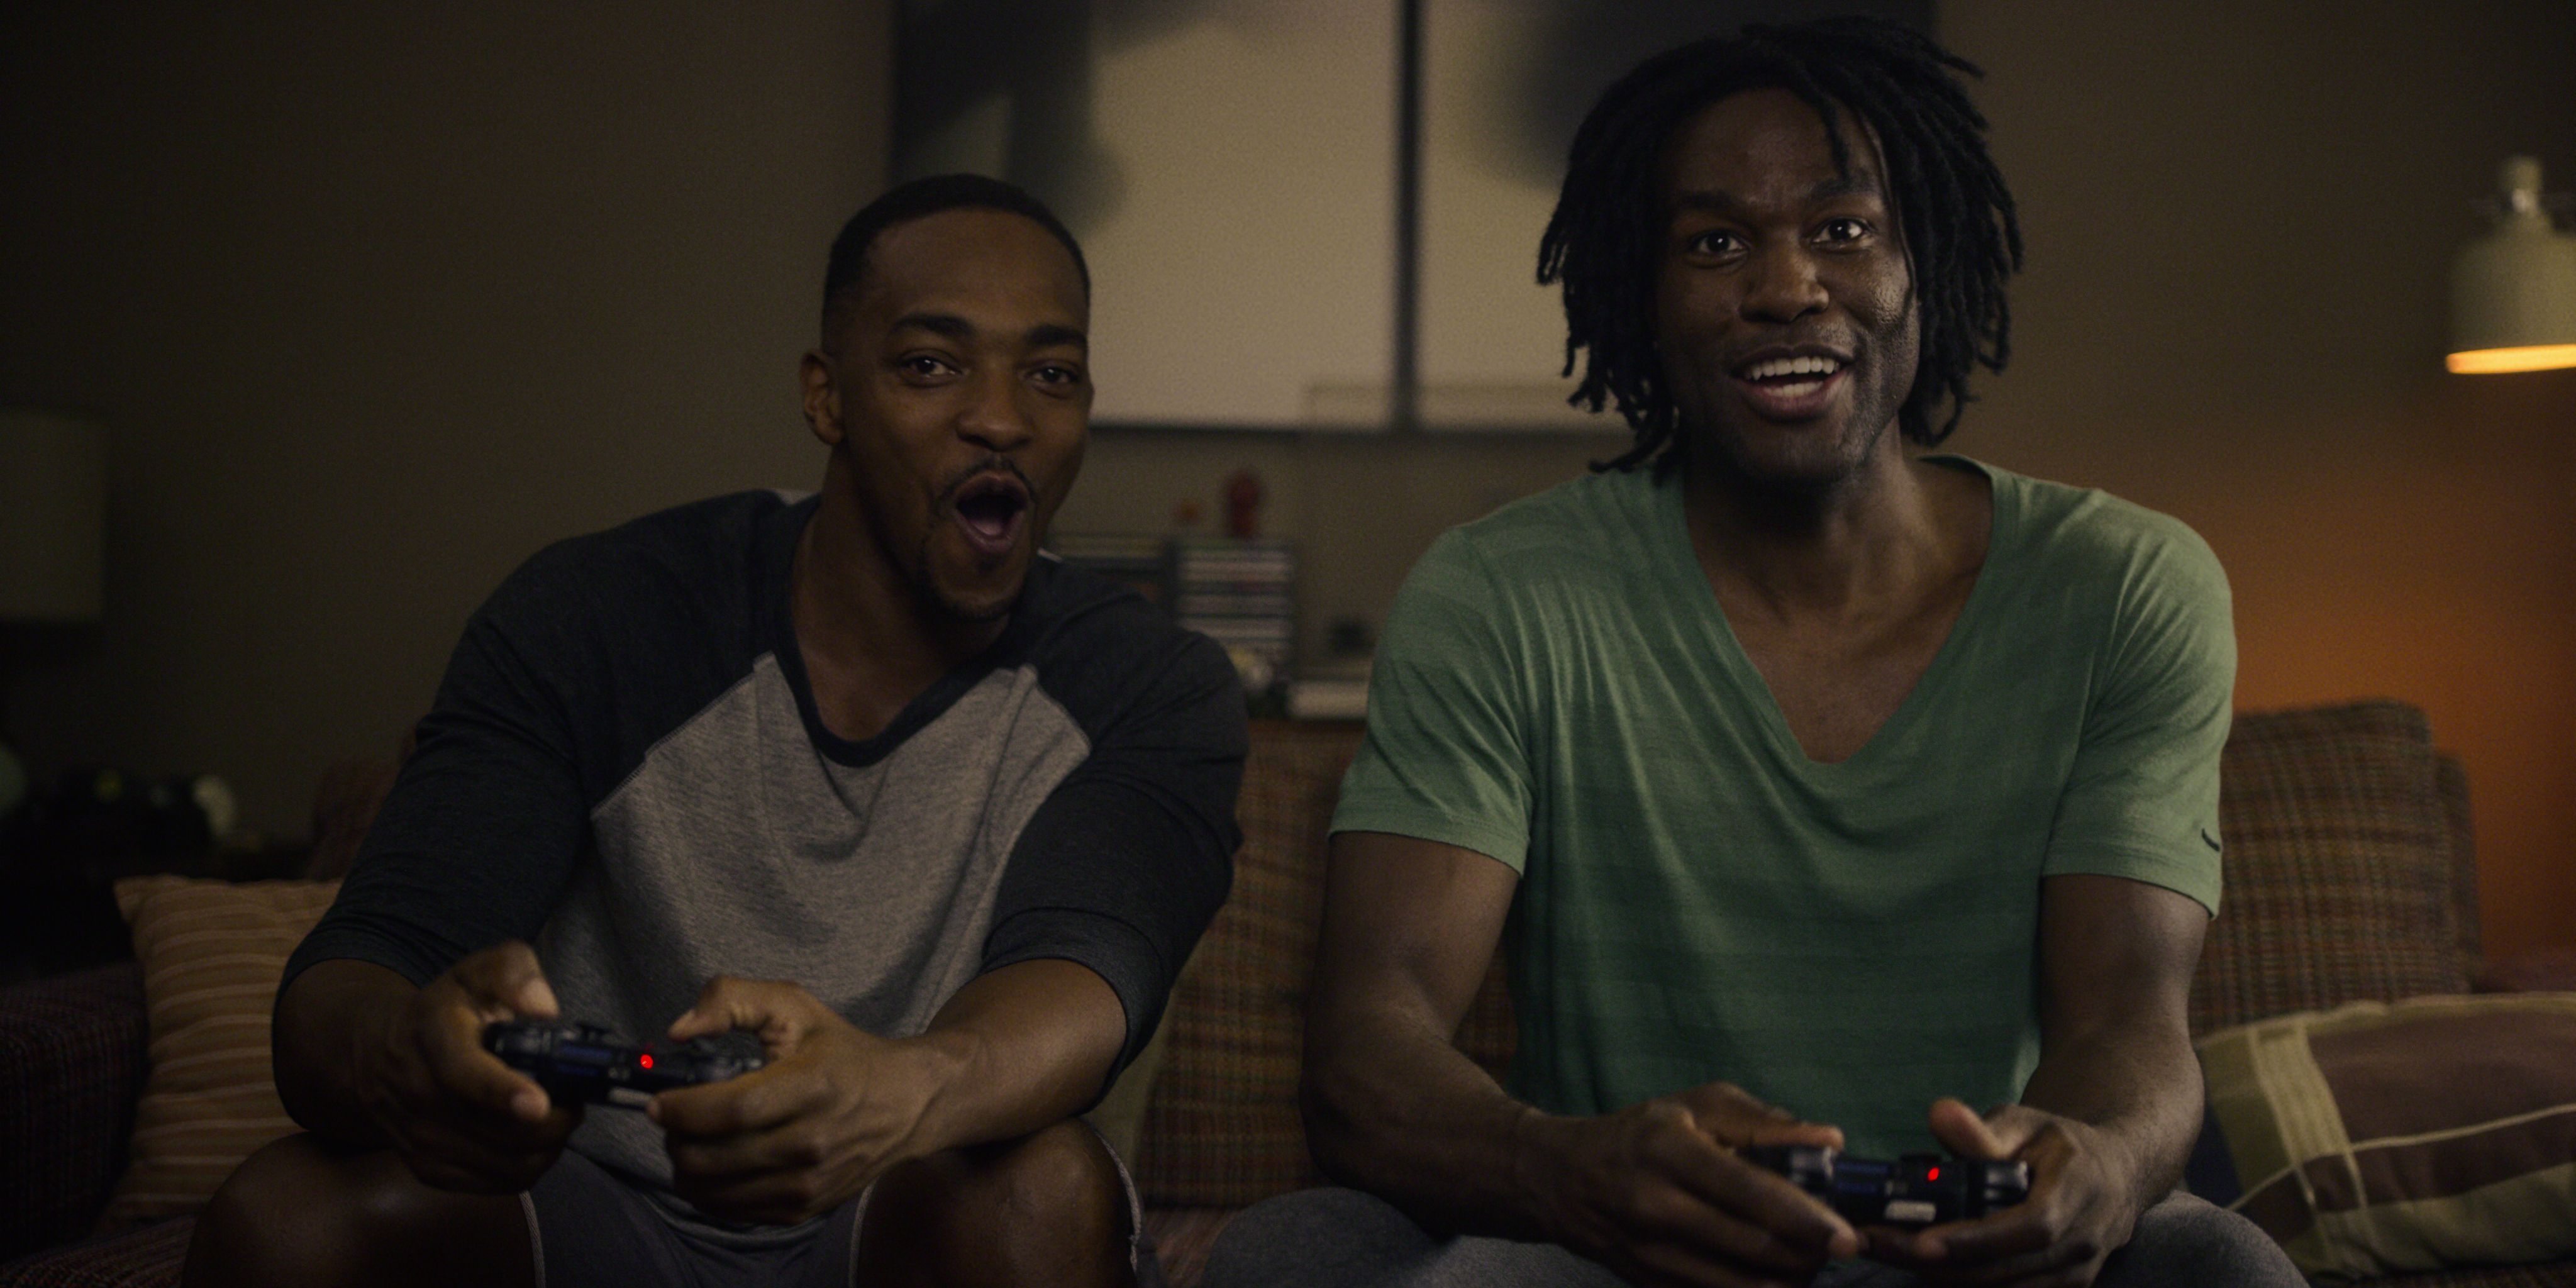 Anthony Mackie and Yahya Abdul-Mateen II play video games in Black Mirror season 5.